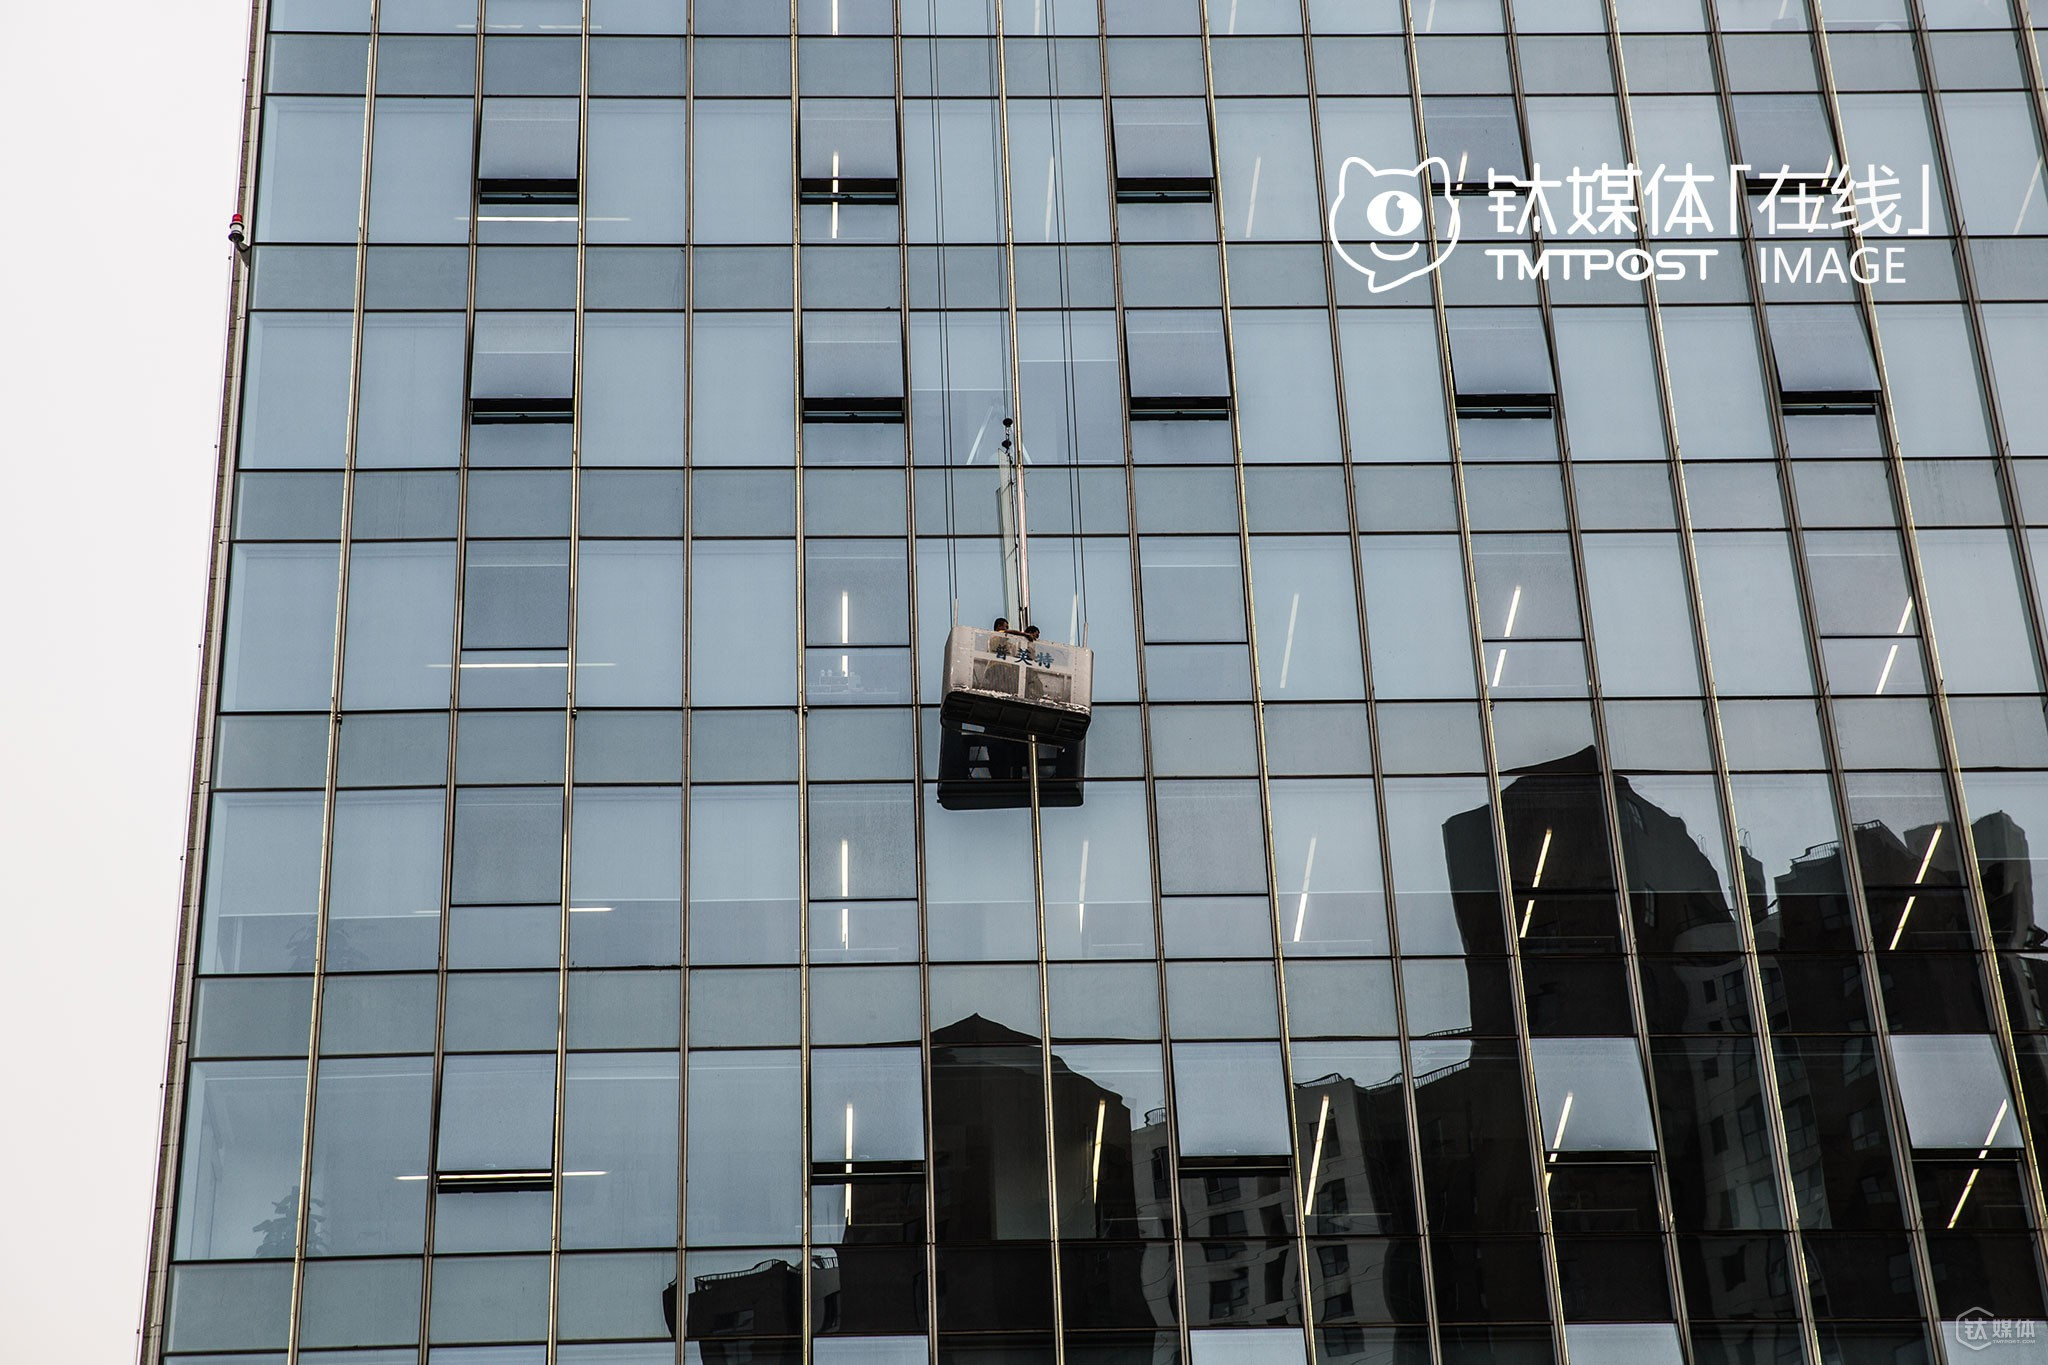 It was July, 14th, 2016, Wangjing Greenland Center. Two workers were cleaning the glass curtain wall of Alibaba Beijing Headquarters, which is still in the trial run stage. This is the first office building Alibaba acquired outside of Hangzhou. Alibaba's logo, hung on top of the building, is gradually becoming one of the new symbols of Wangjing. 19 years has passed since Jack Ma, the founder of Alibaba, and his founding partners went to Beijing and looked for opportunities. How time flies.